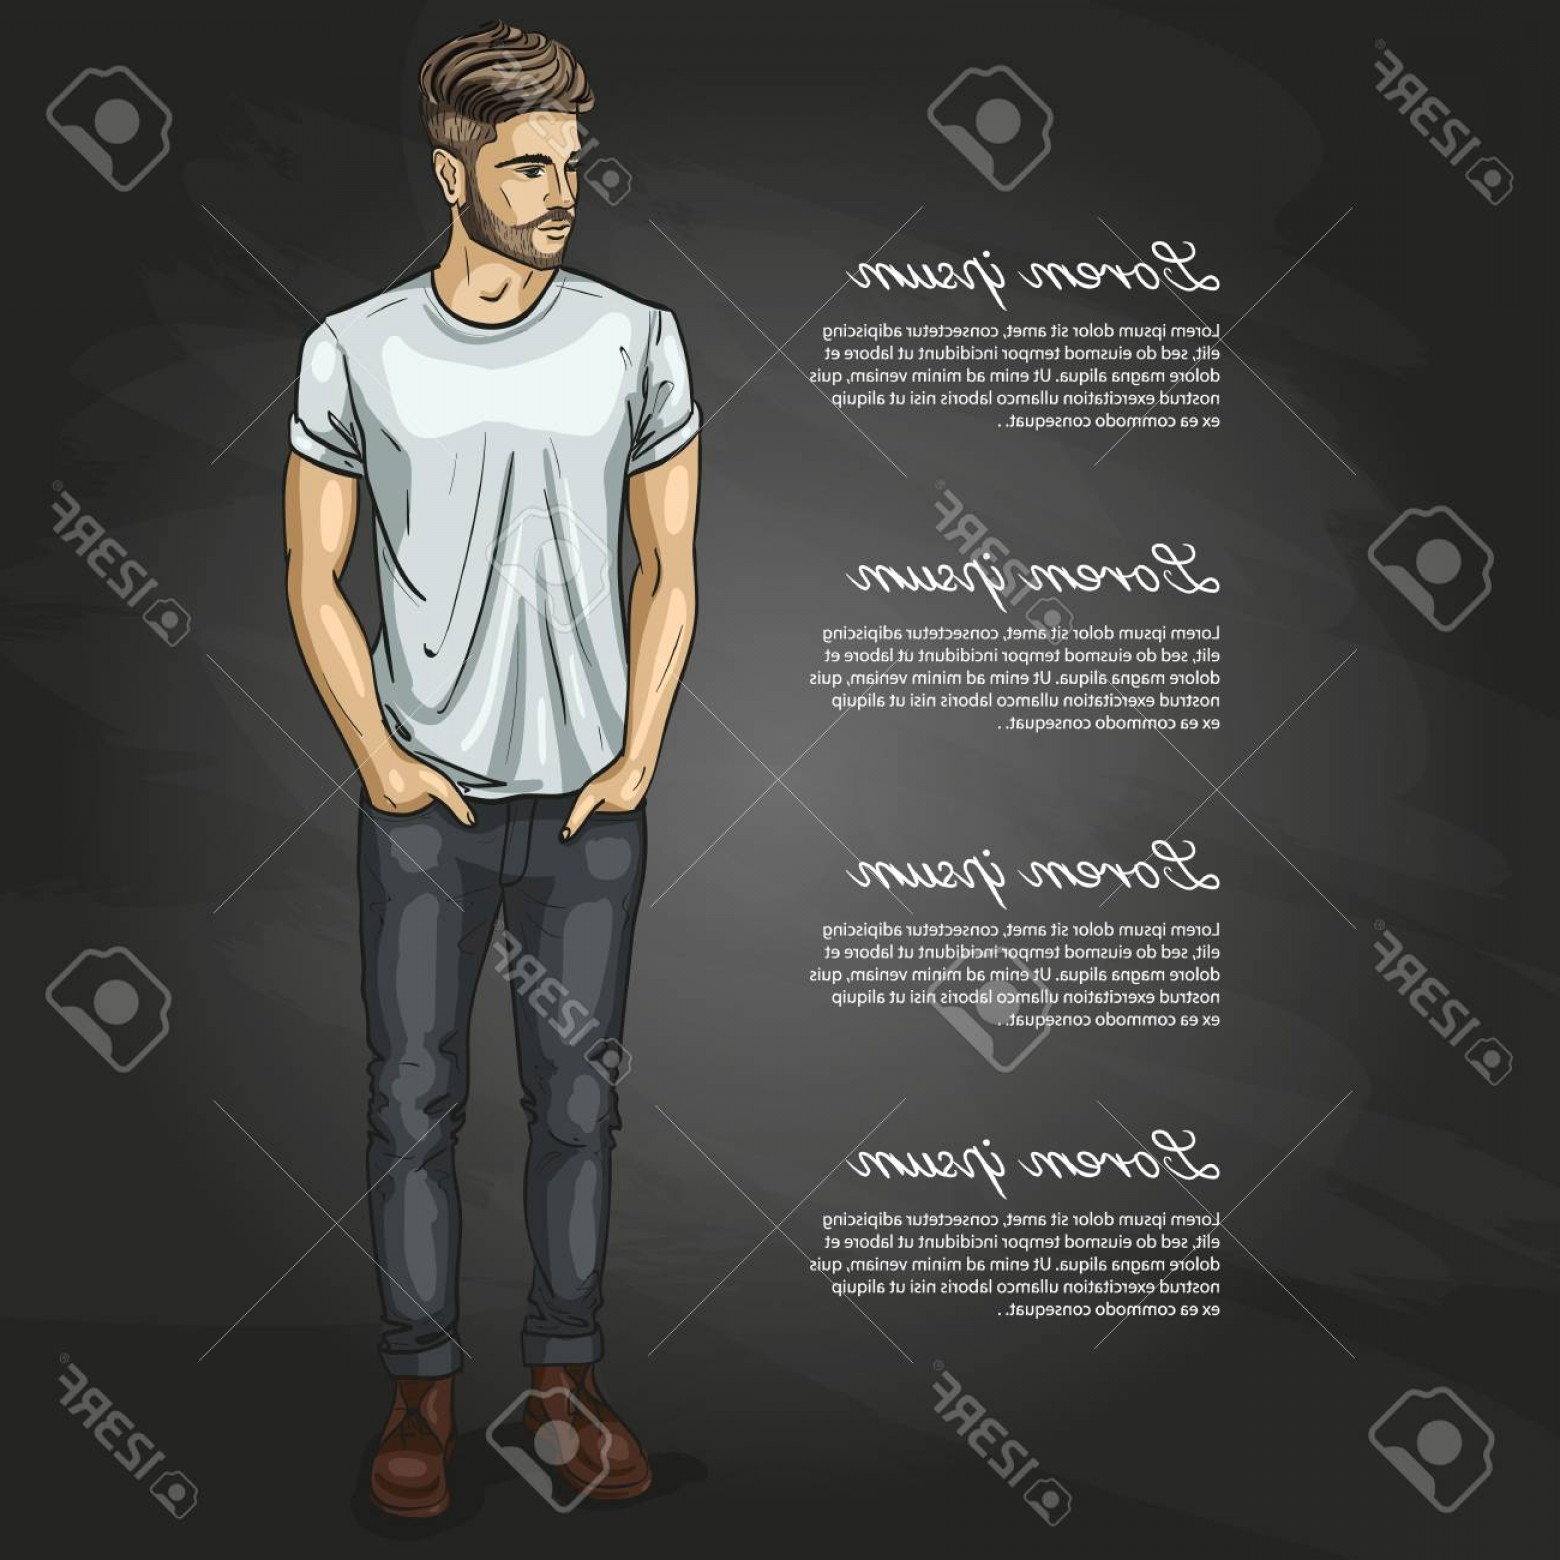 Vectorman Darkness: Photostock Vector Vector Man Model Dressed In Jeans Shoes And T Shirt On Dark Background